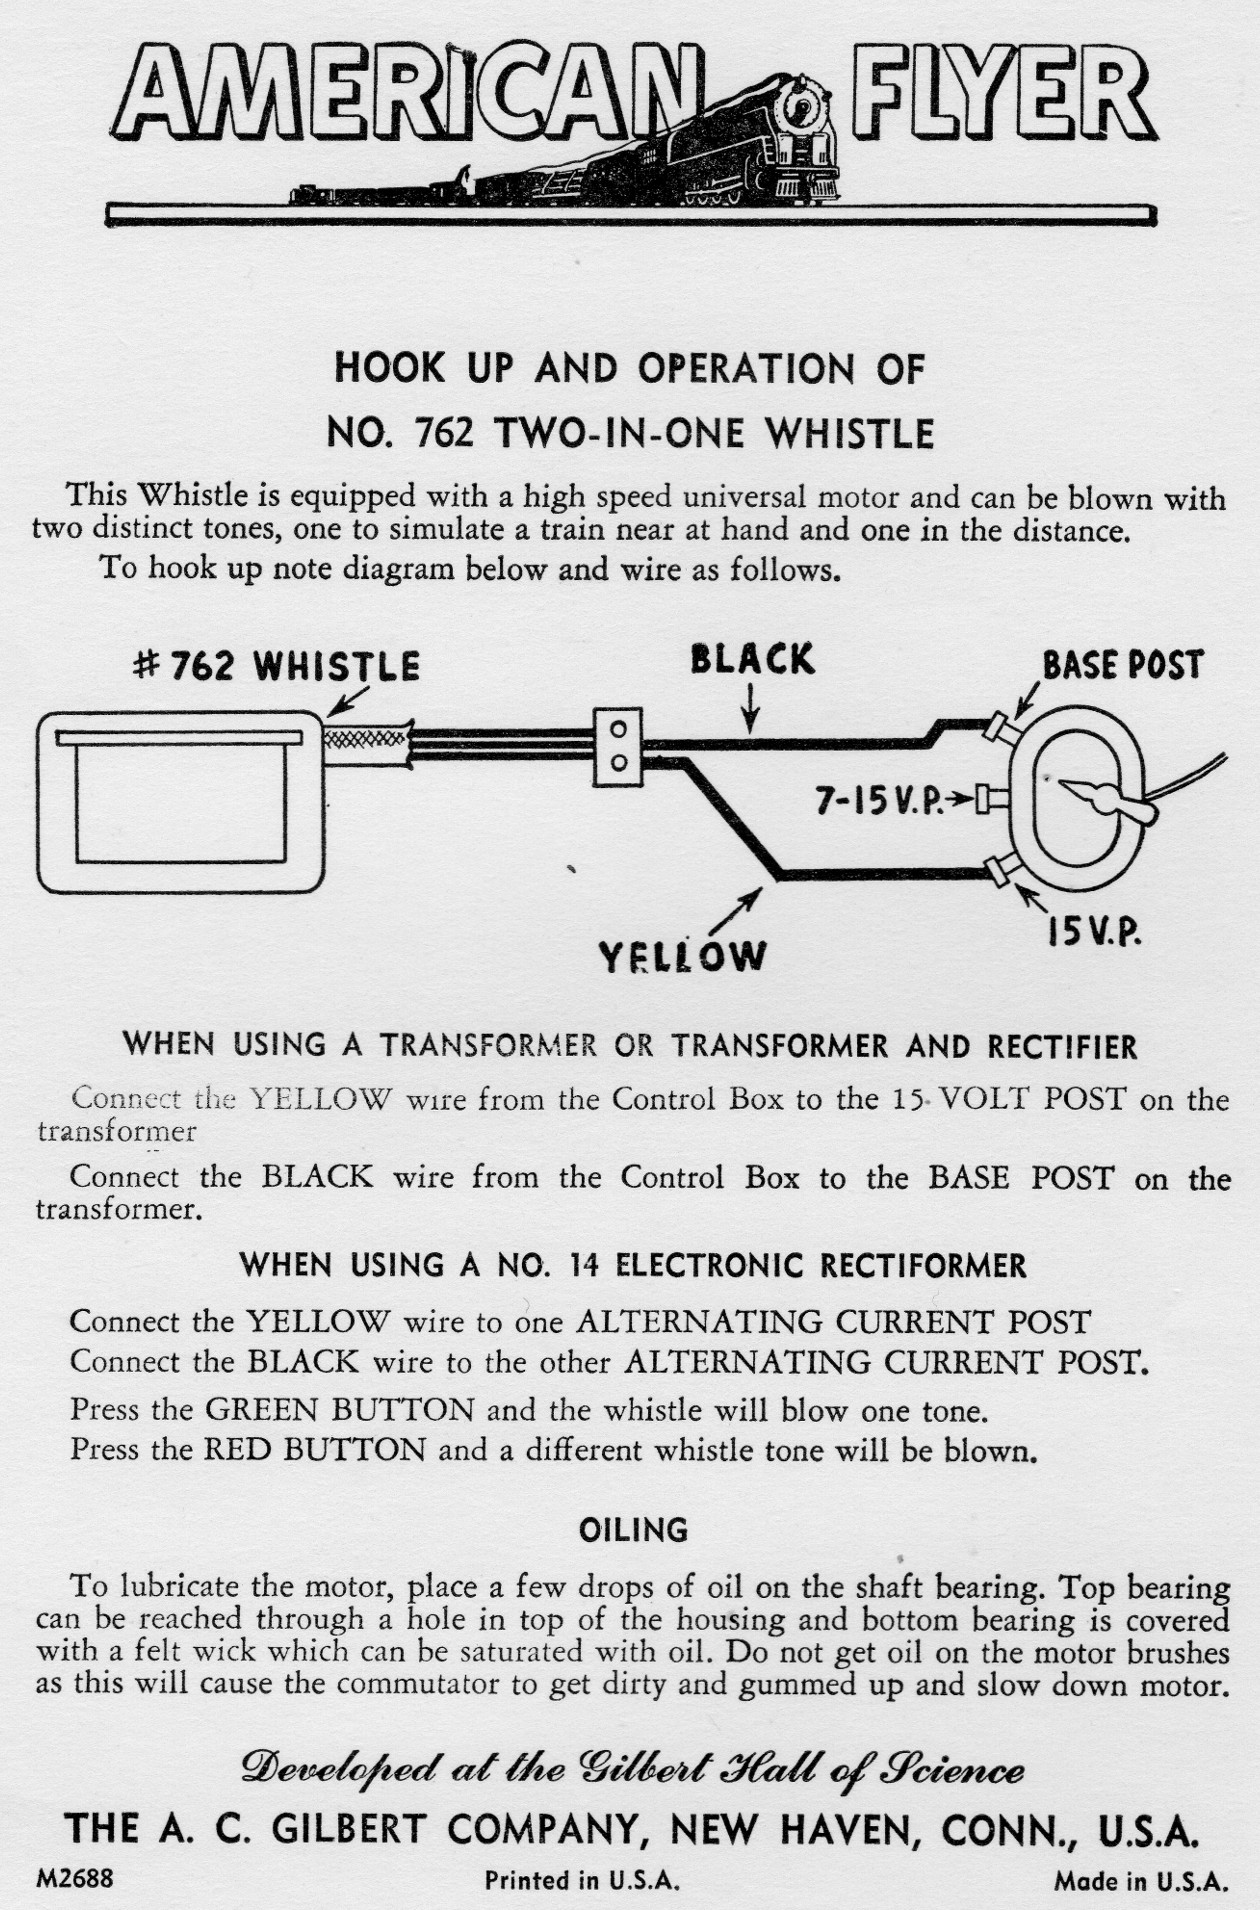 american flyer whistle wiring diagrams american flyer